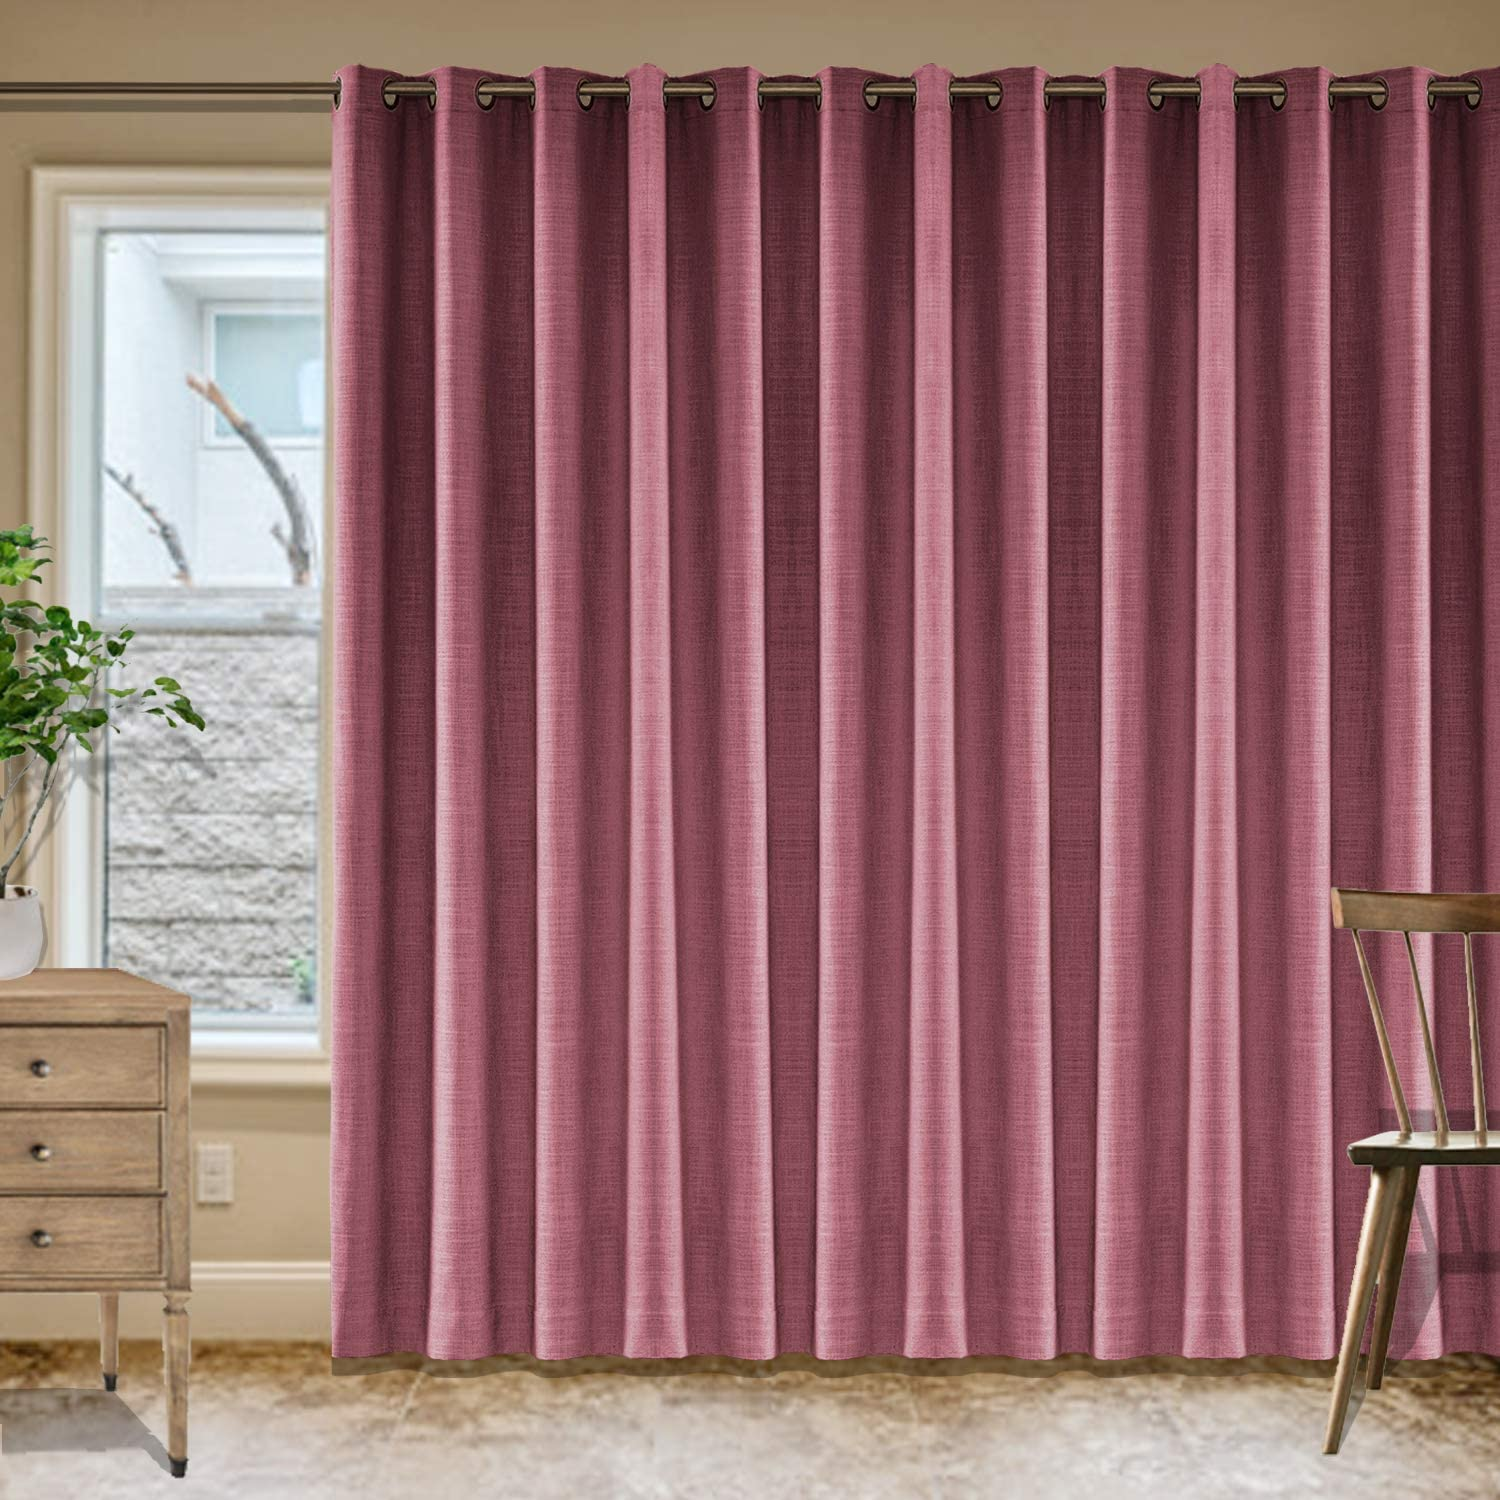 Frelement Burgundy Red Breathable Faux Linen Curtains 賜物 Noise Redu お得